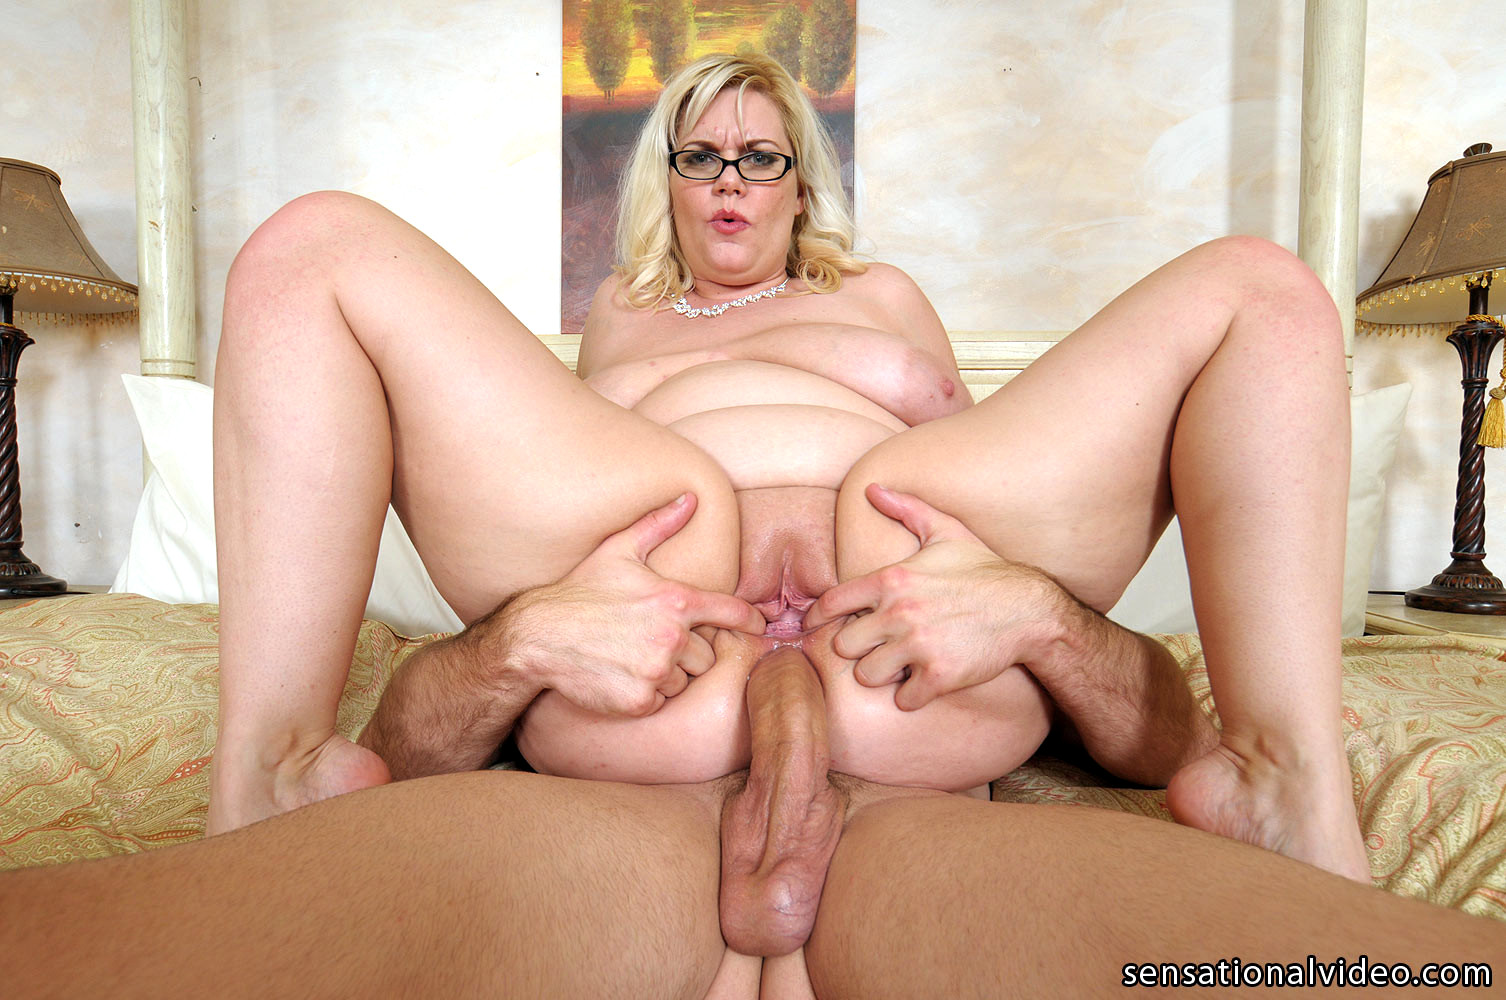 sexprono-video-mature-ass-fucking-bitches-witherspoon